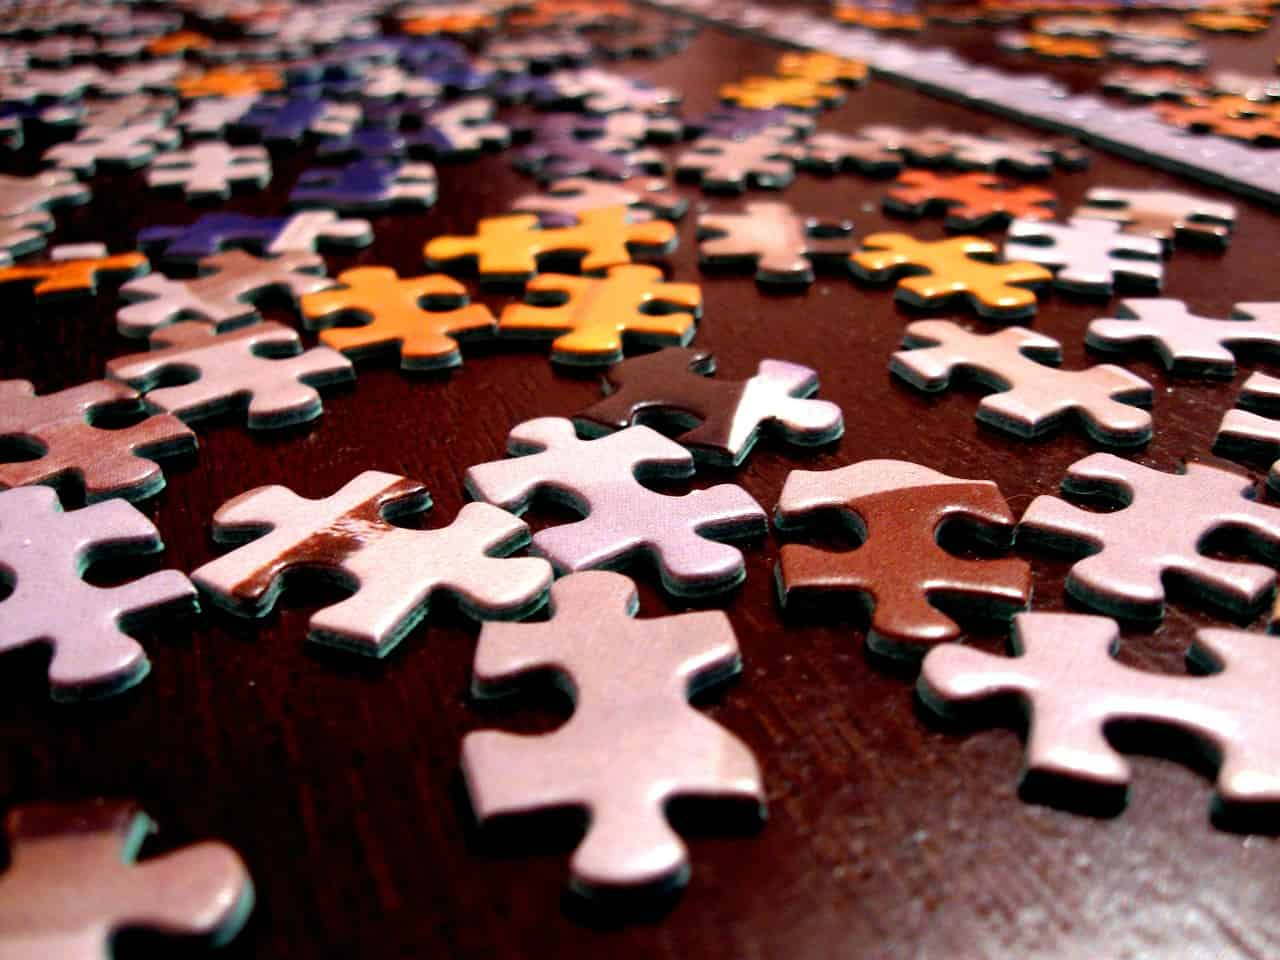 Puzzle pieces lying on a table